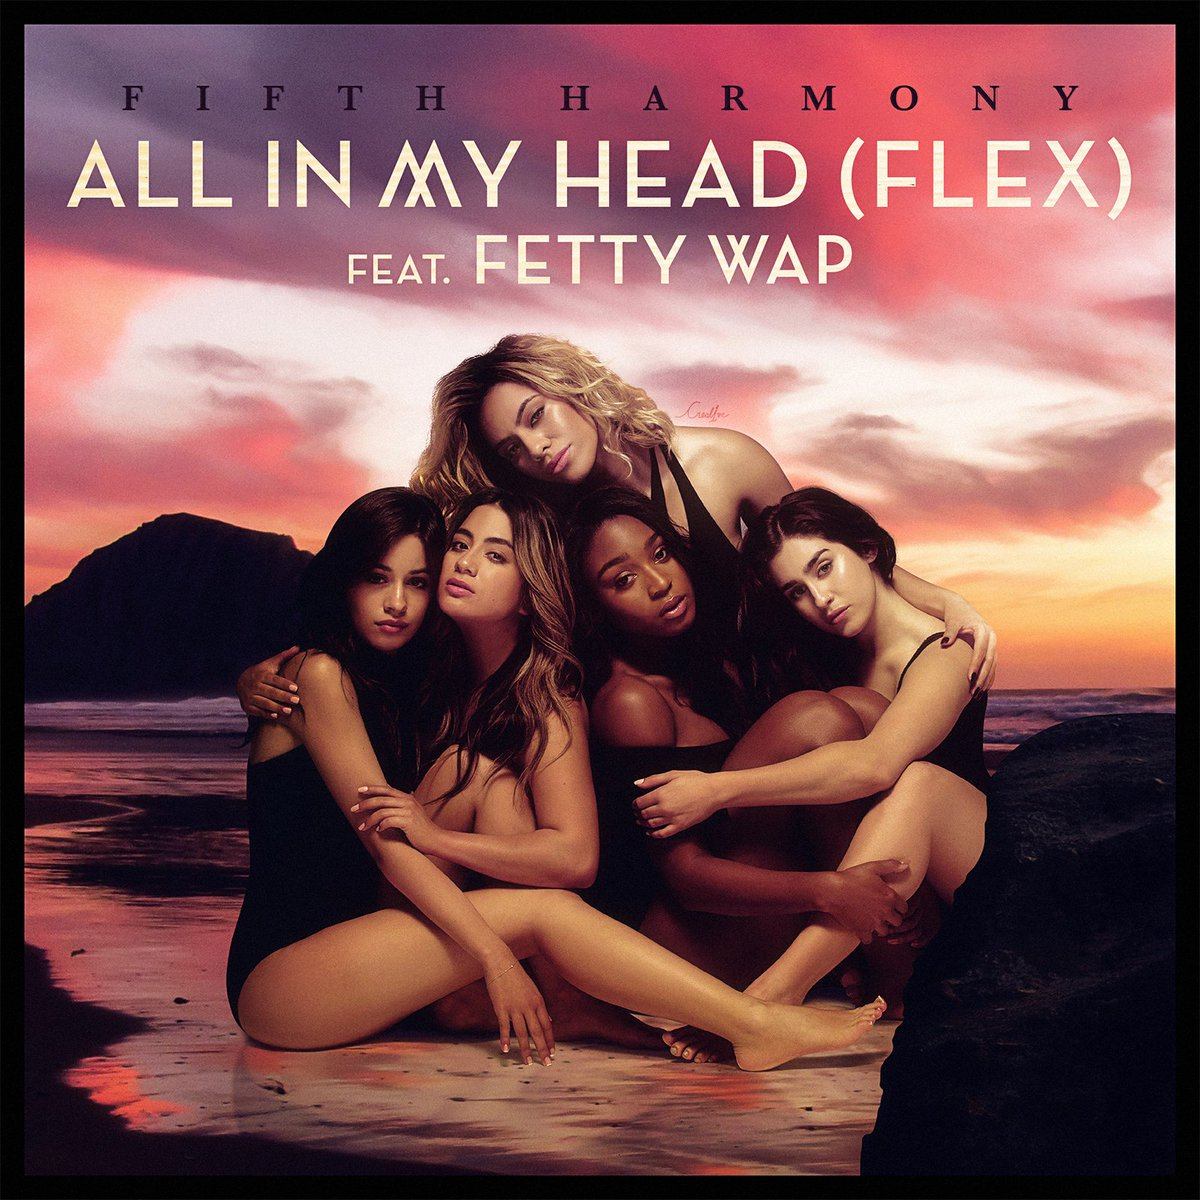 Baixar Música All In My Head (Flex) – Fifth Harmony ft. Fetty Wap